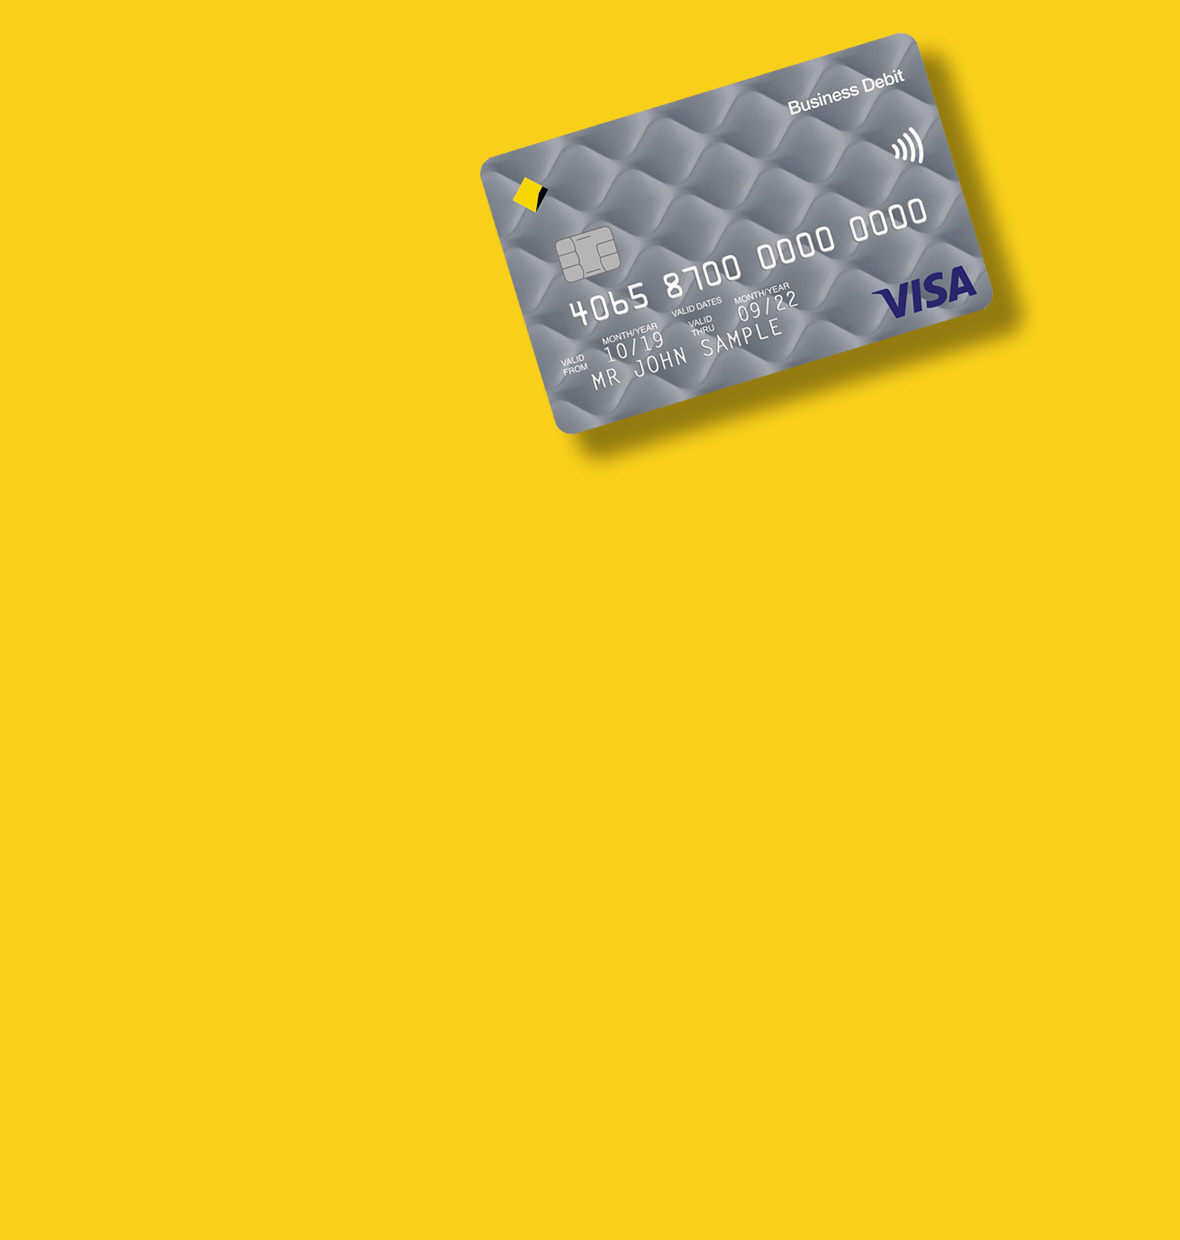 Business Visa Debit Card